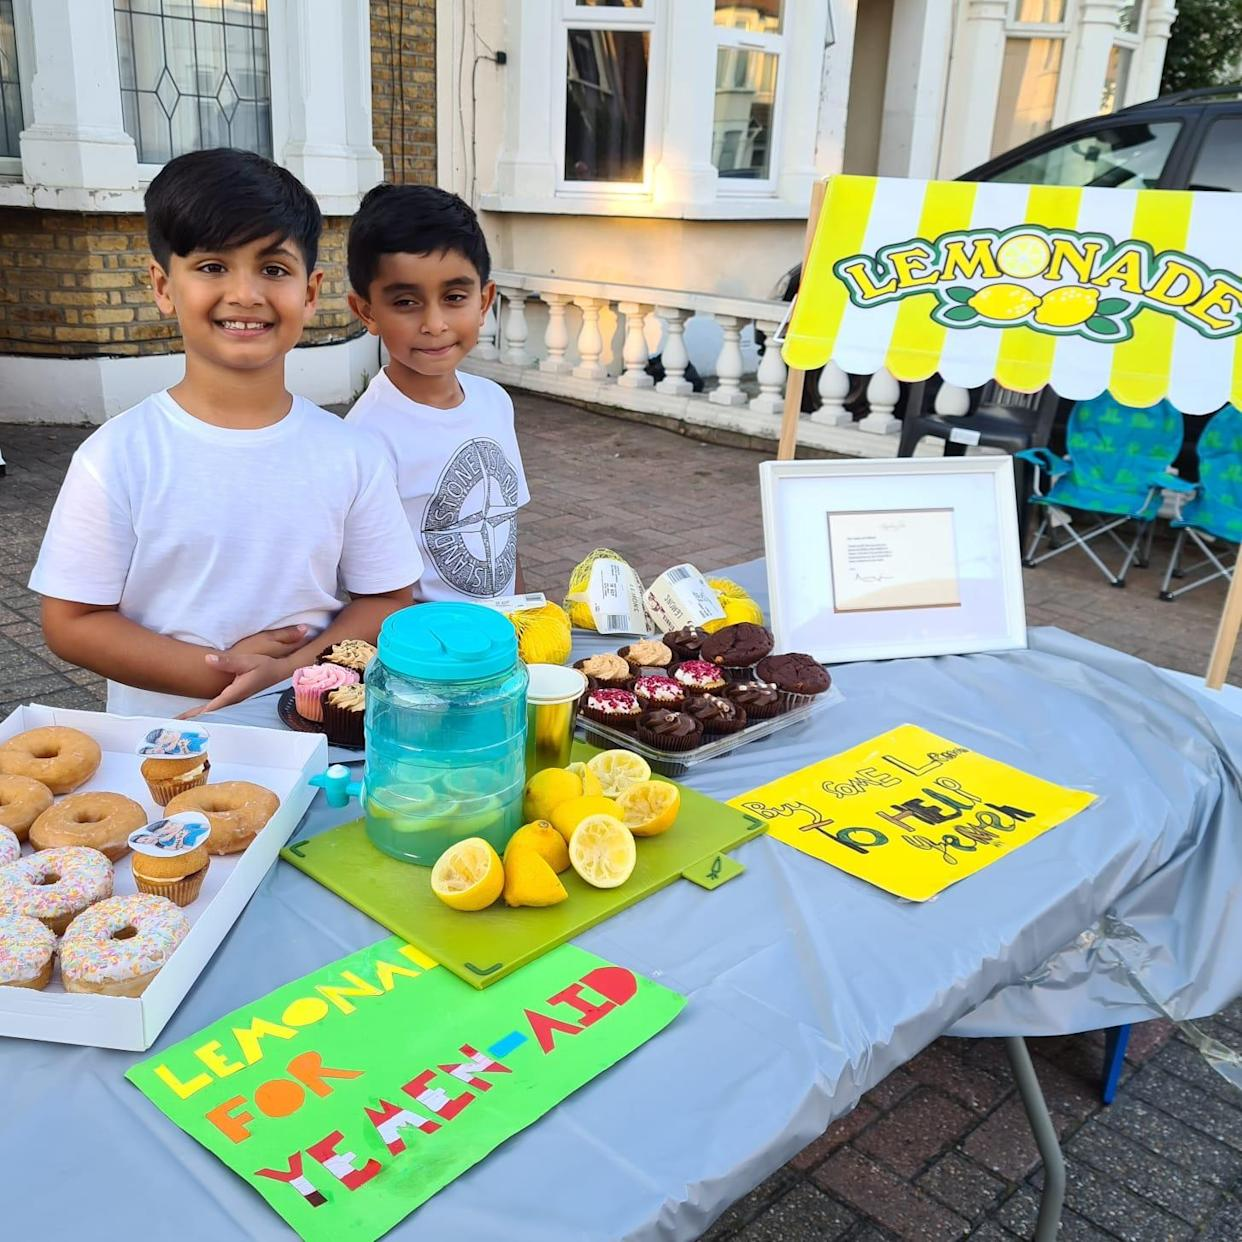 Mikaeel Ishaaq (right) and Ayaan Moosa have been raising money for causes with their lemonade